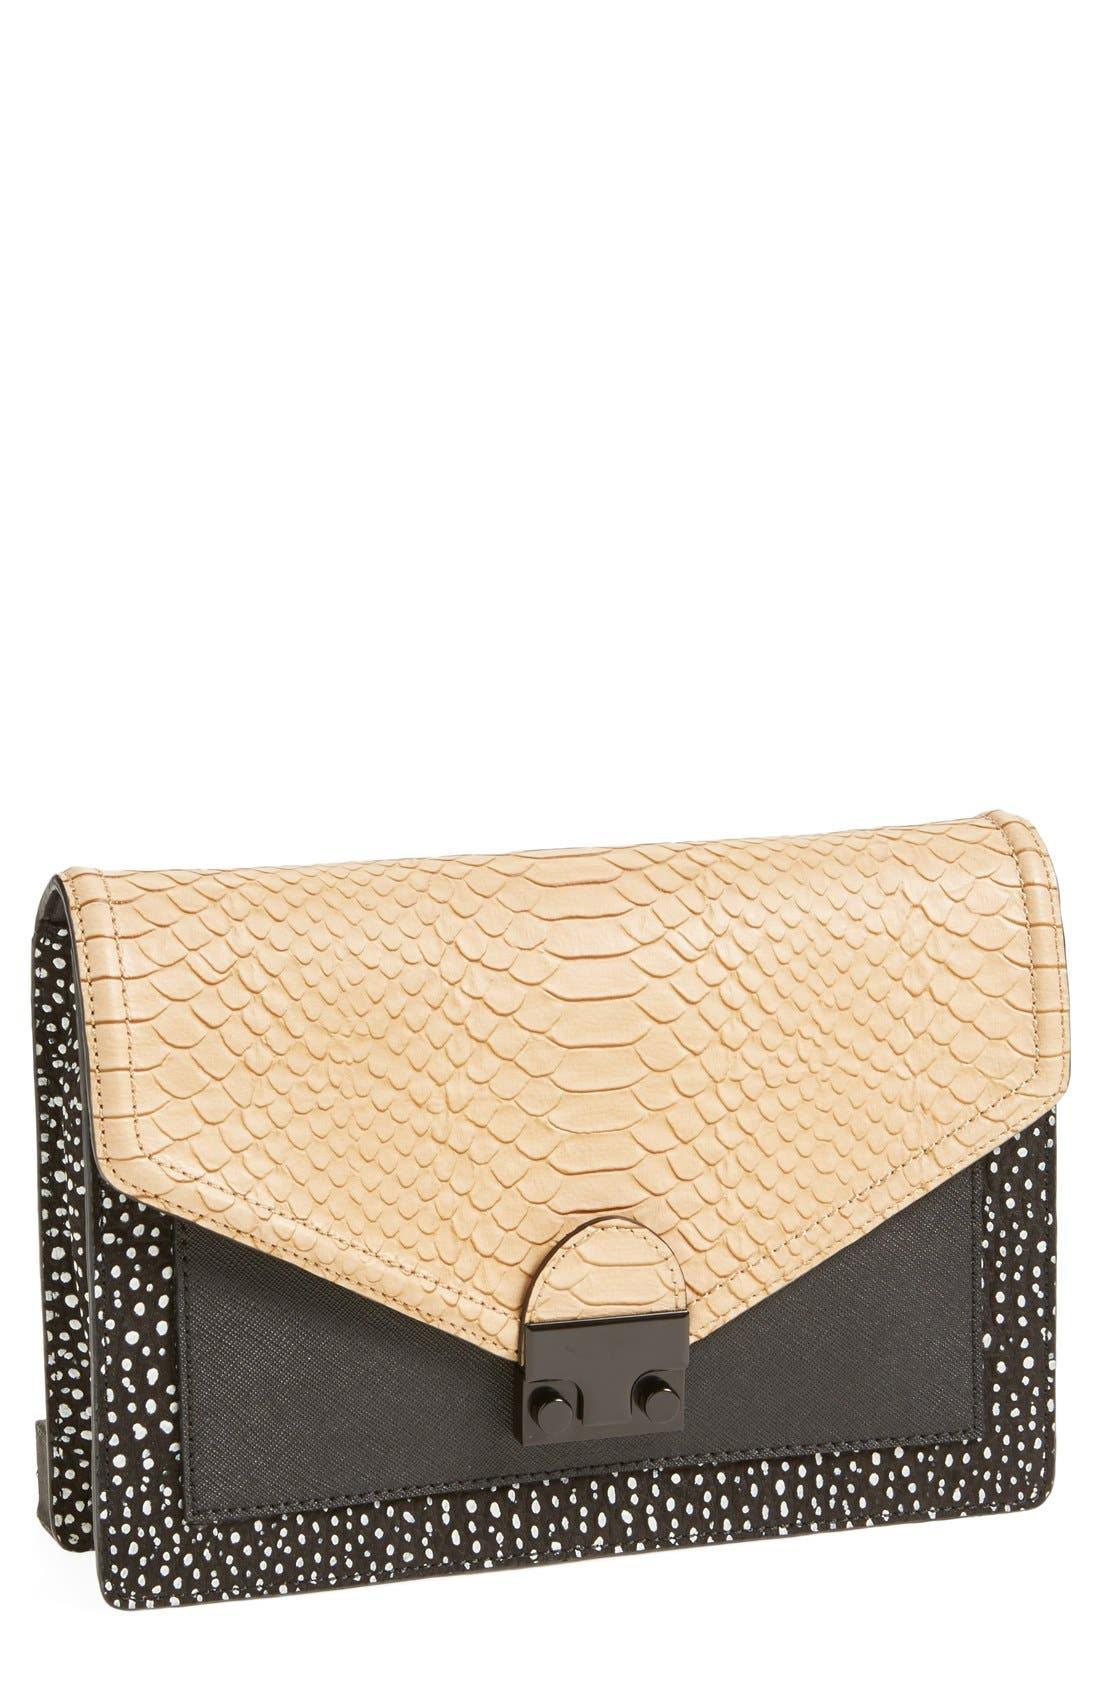 Alternate Image 1 Selected - Loeffler Randall 'Rider' Clutch